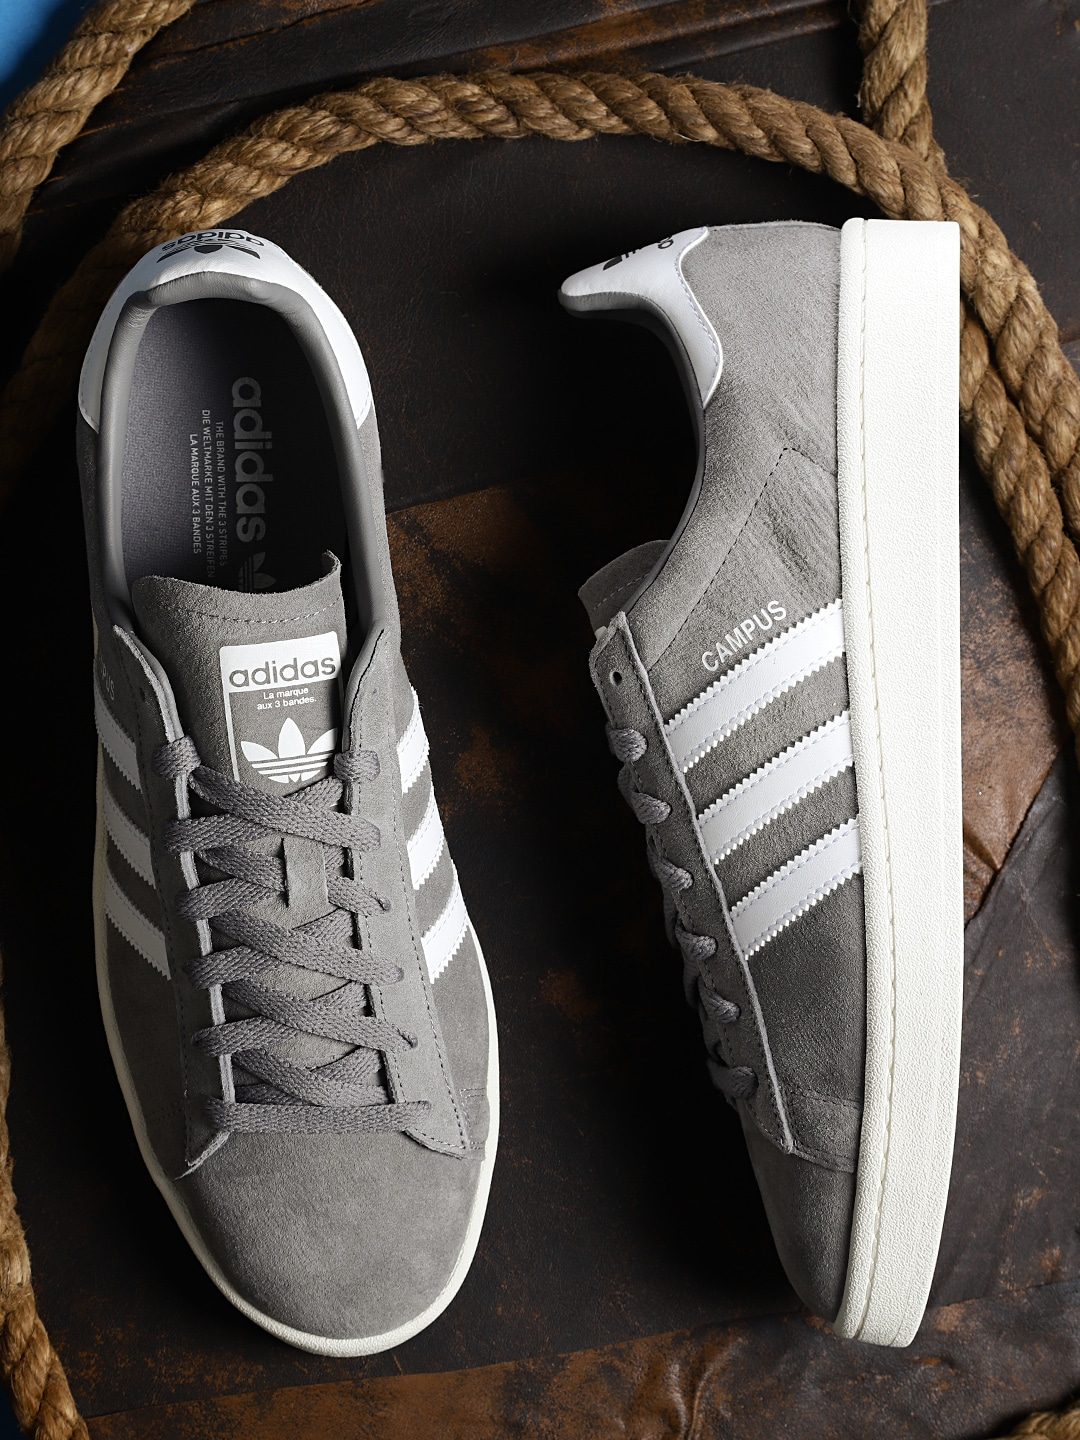 53c2f5cc932 Adidas Originals - Buy Adidas Originals Products Online